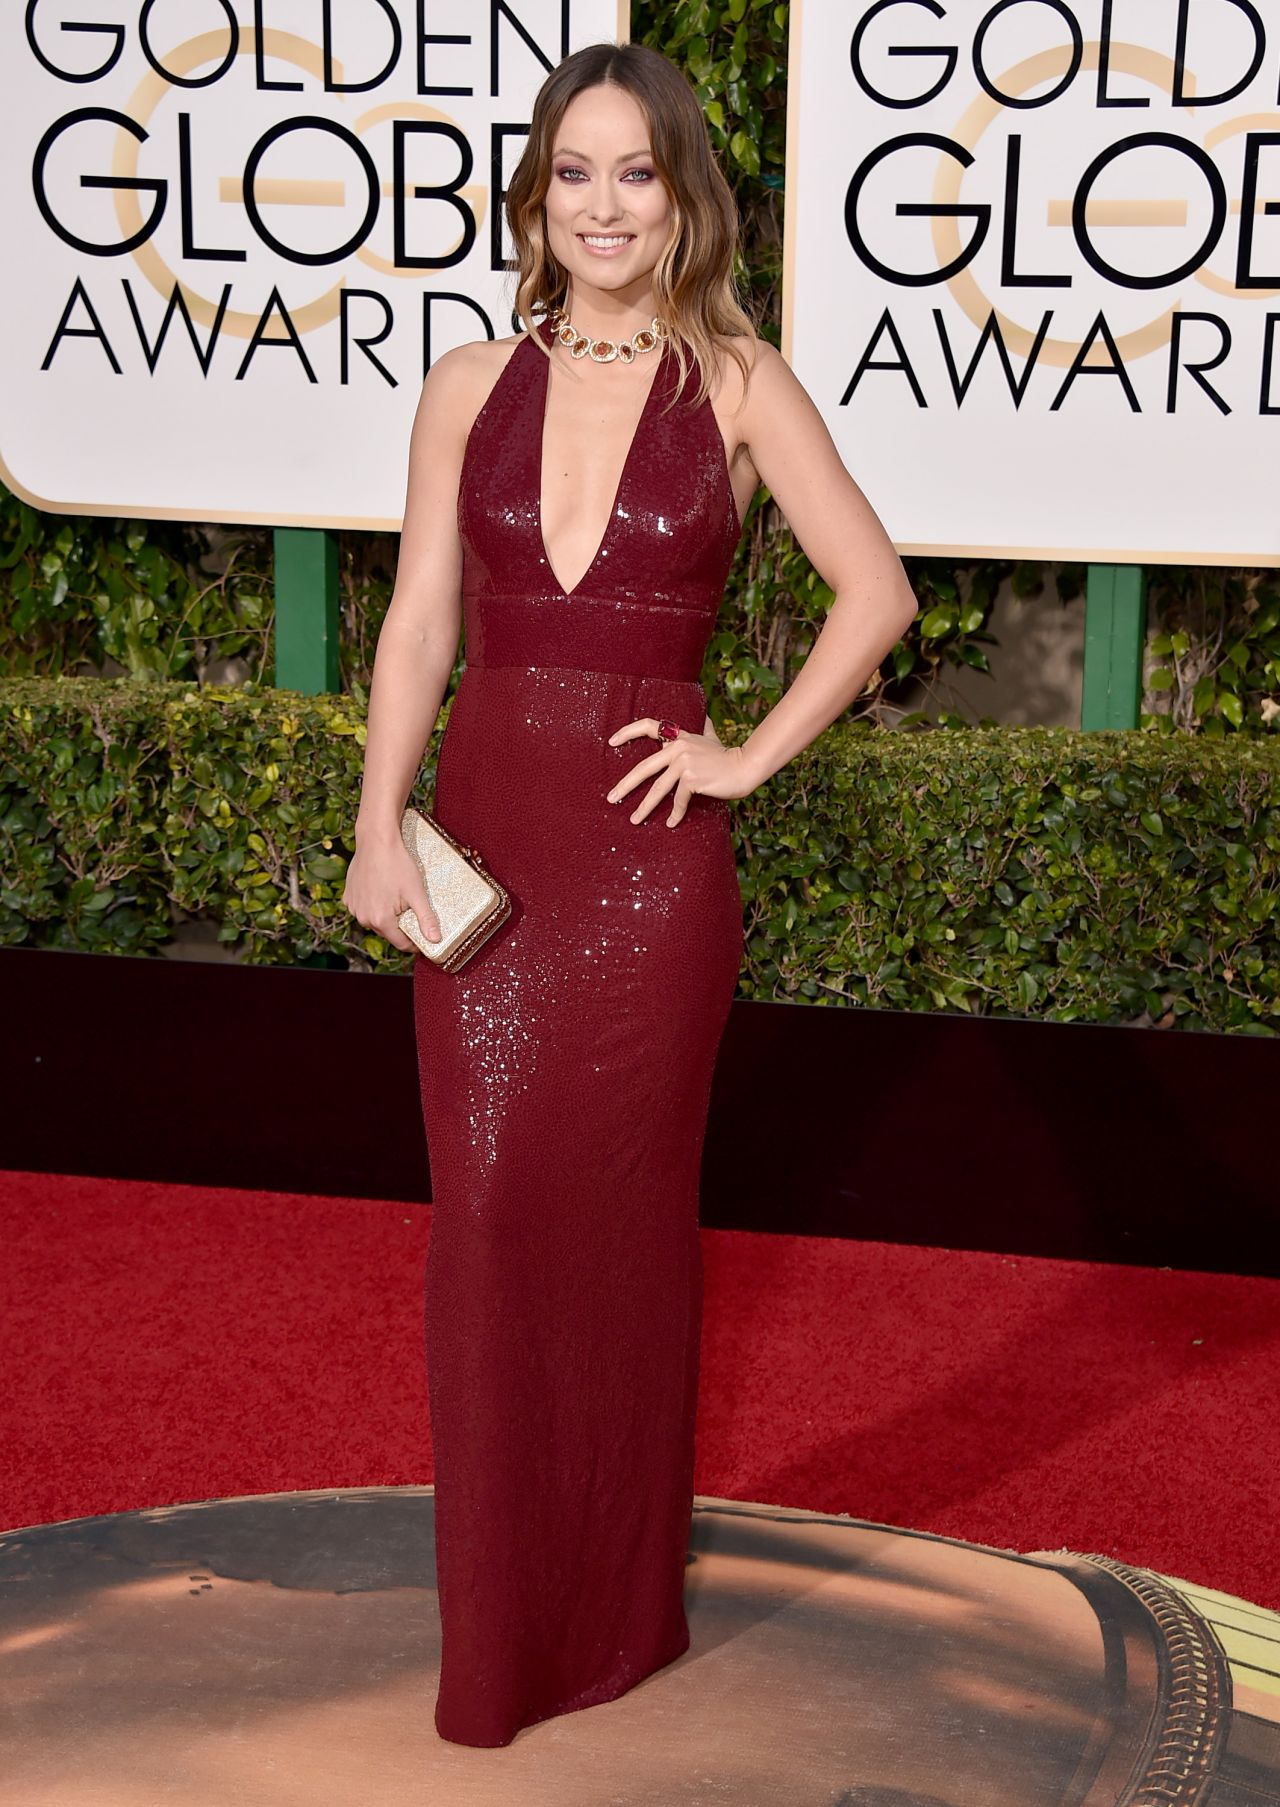 Olivia Wilde at Golden Globes Awards 2016